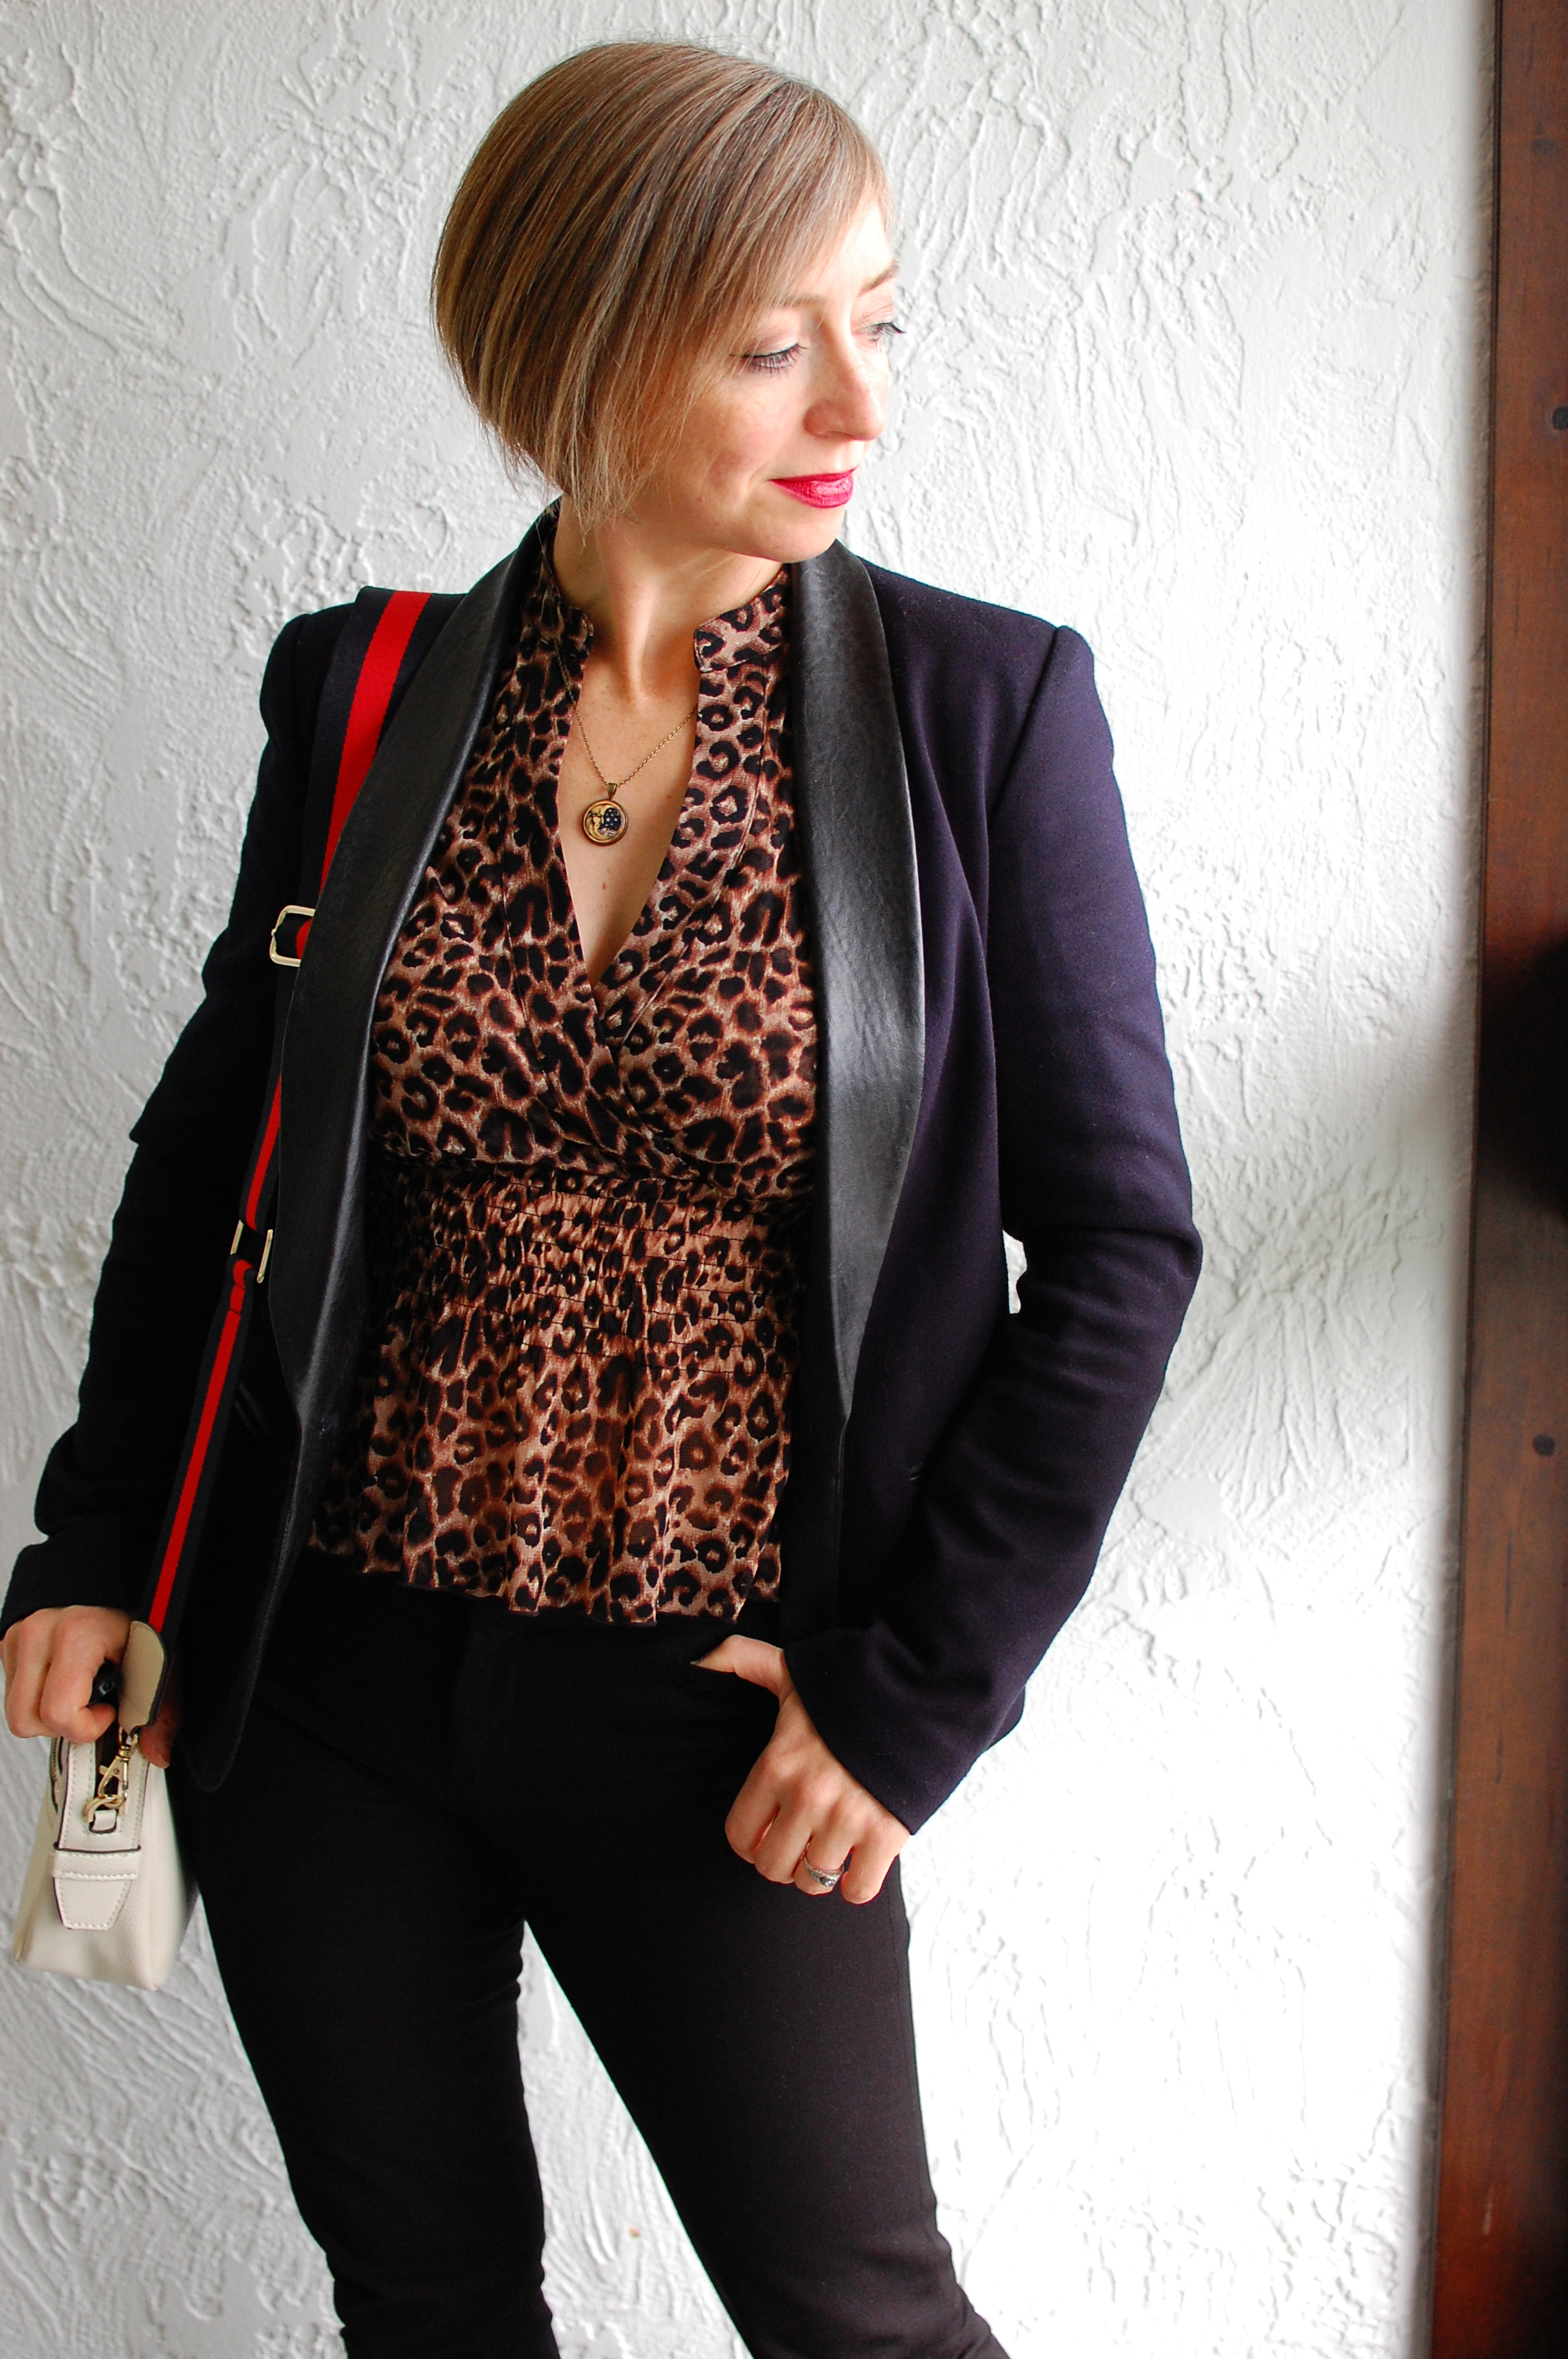 leopard business suit leopard leather black navy ootd whatiwore2day